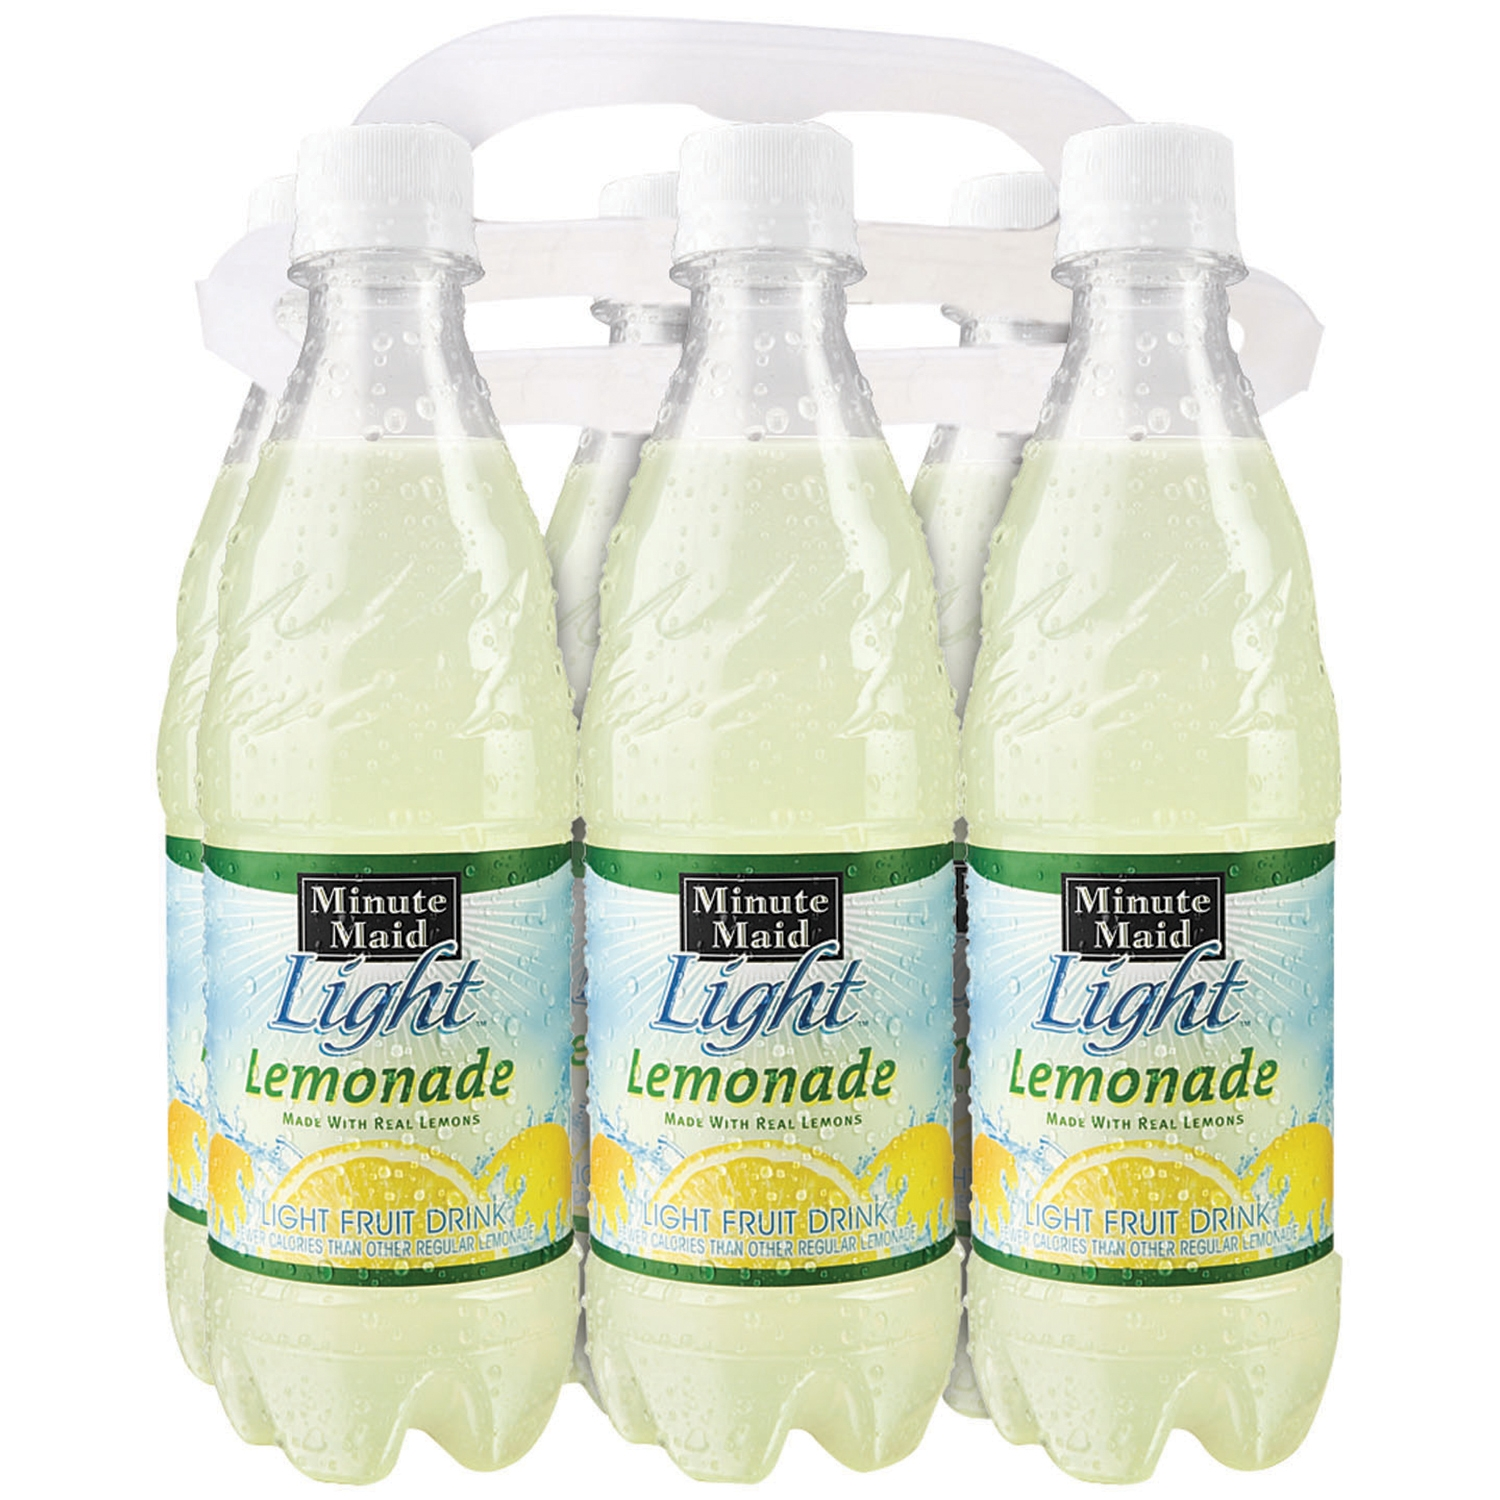 Minute Maid Light Lemonade 6 16.9 Fl Oz Plastic Bottles Nice Design